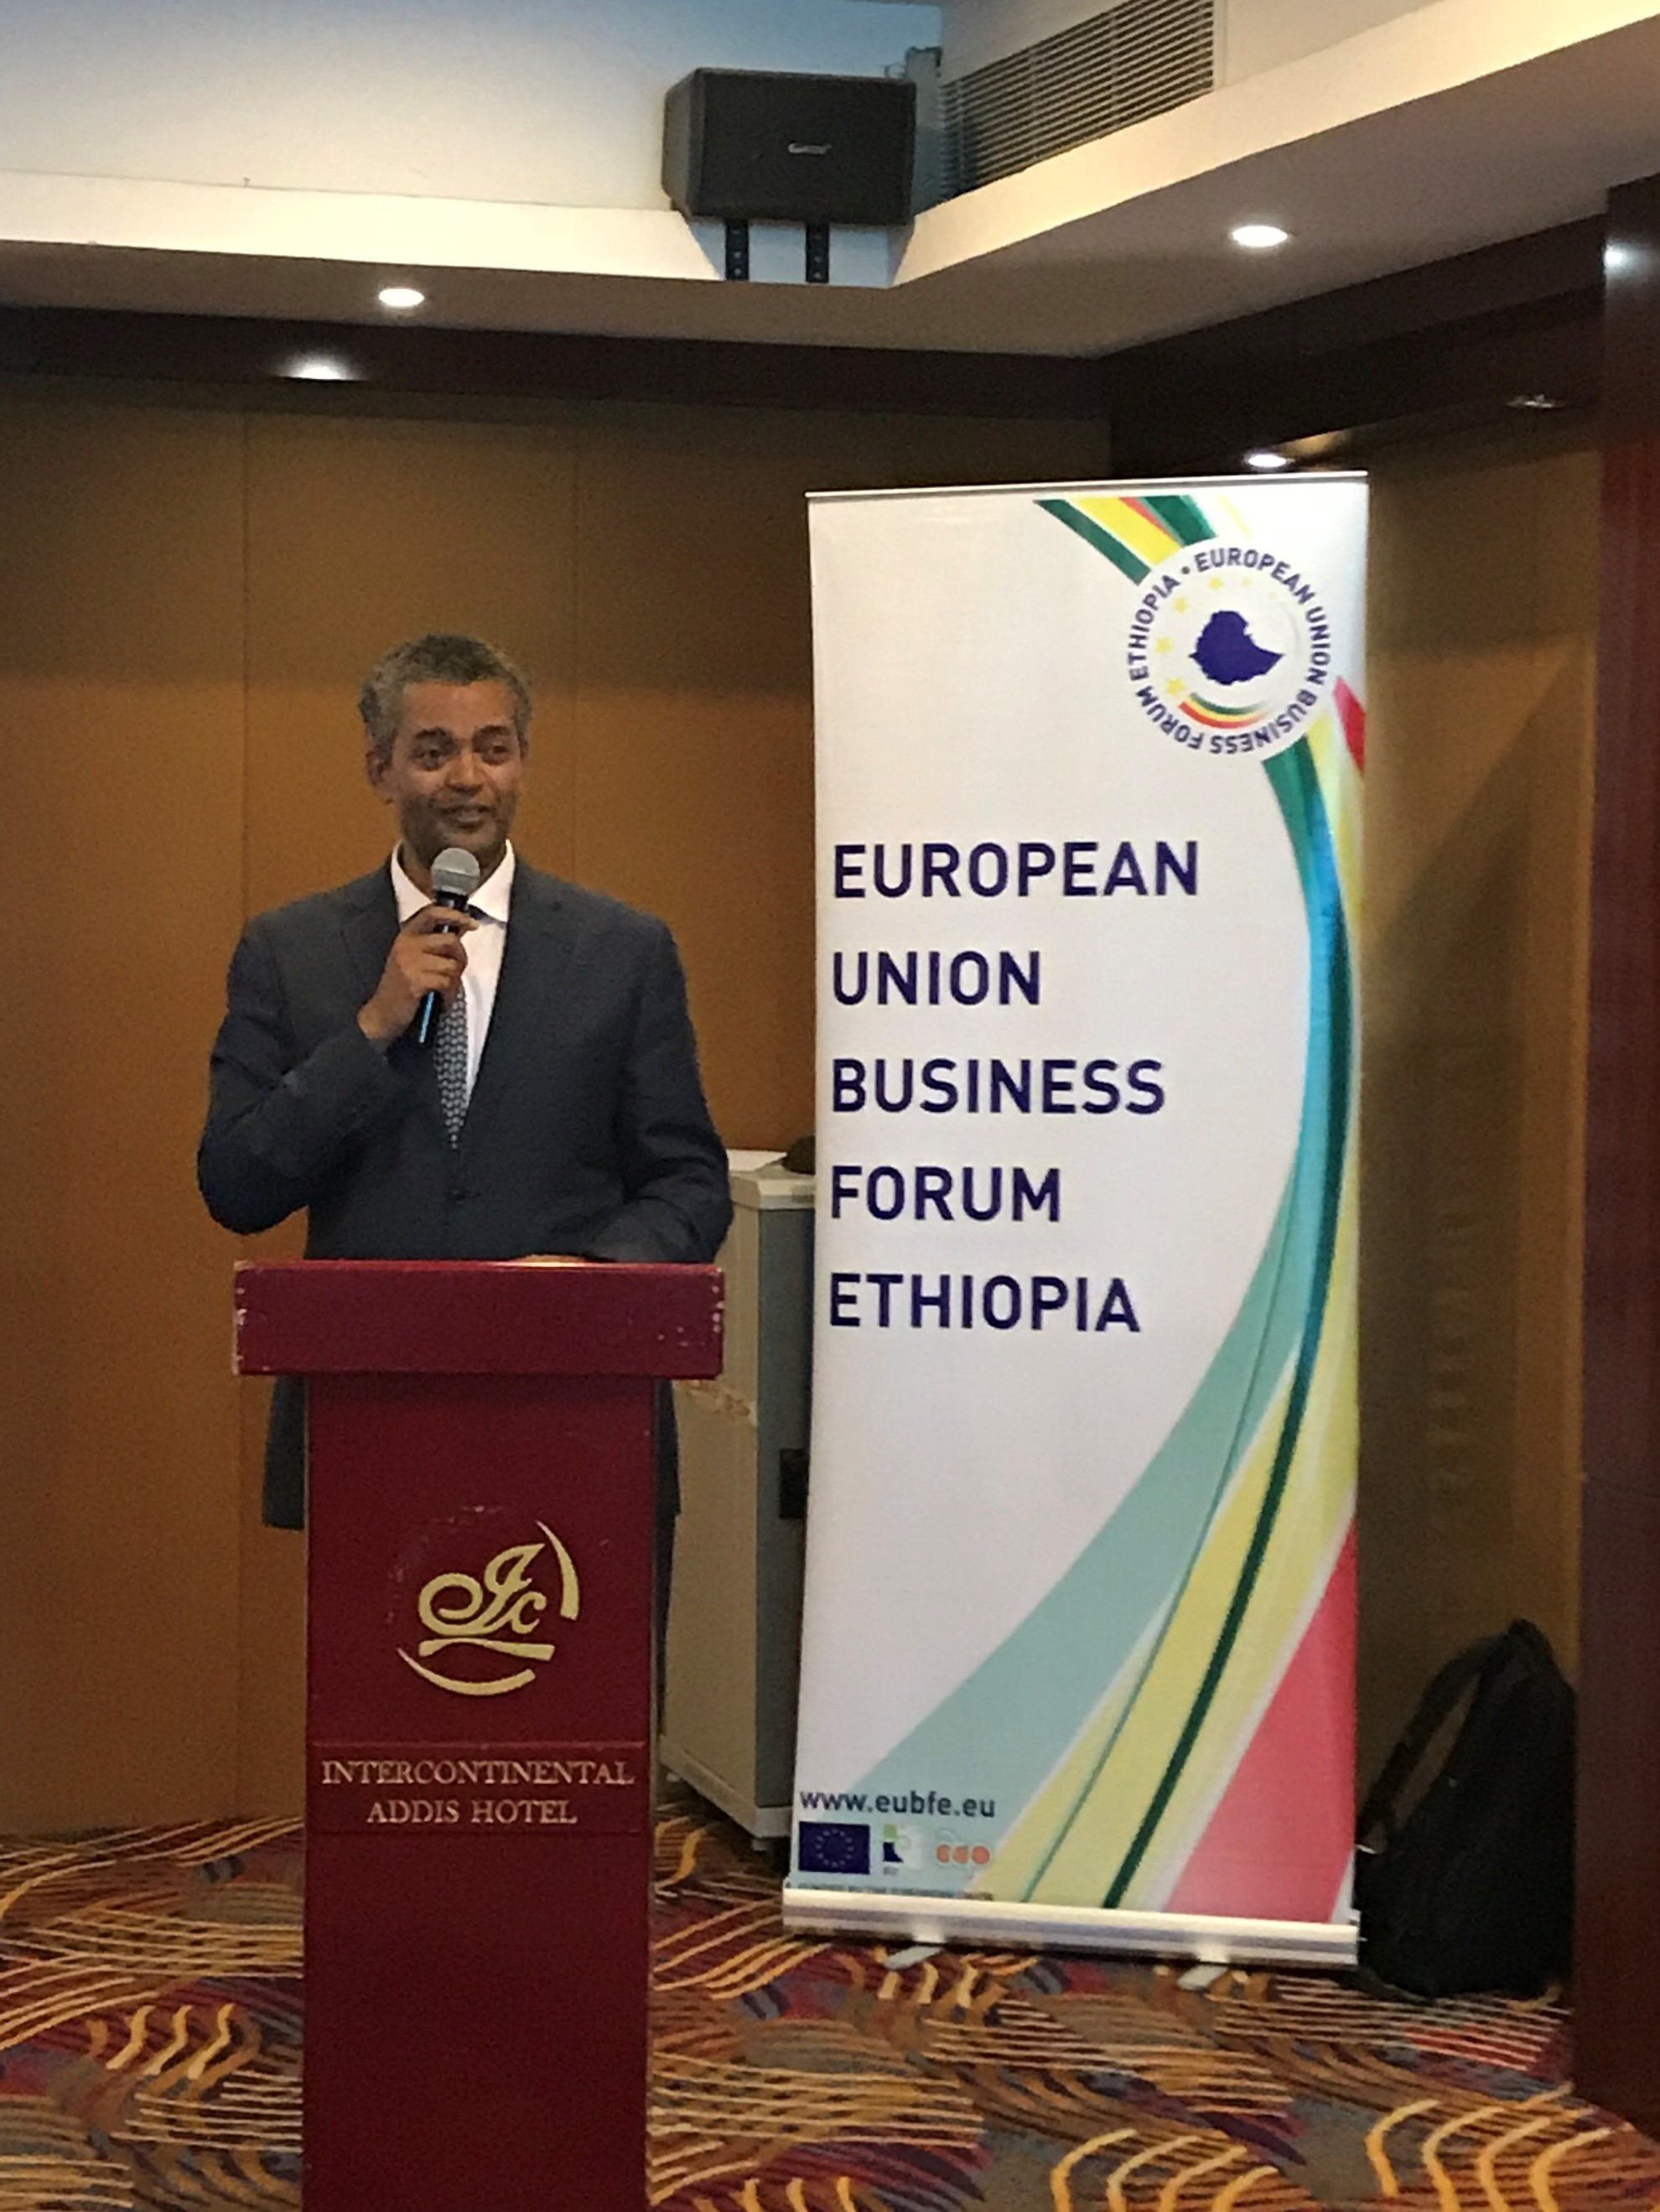 the-newly-appointed-commissioner-of-the-ethiopian-commission-and-the-head-of-the-eu-delegation-to-ethiopia-delivered-key-note-addresses-at-the-eubfe-thematic-networking-event